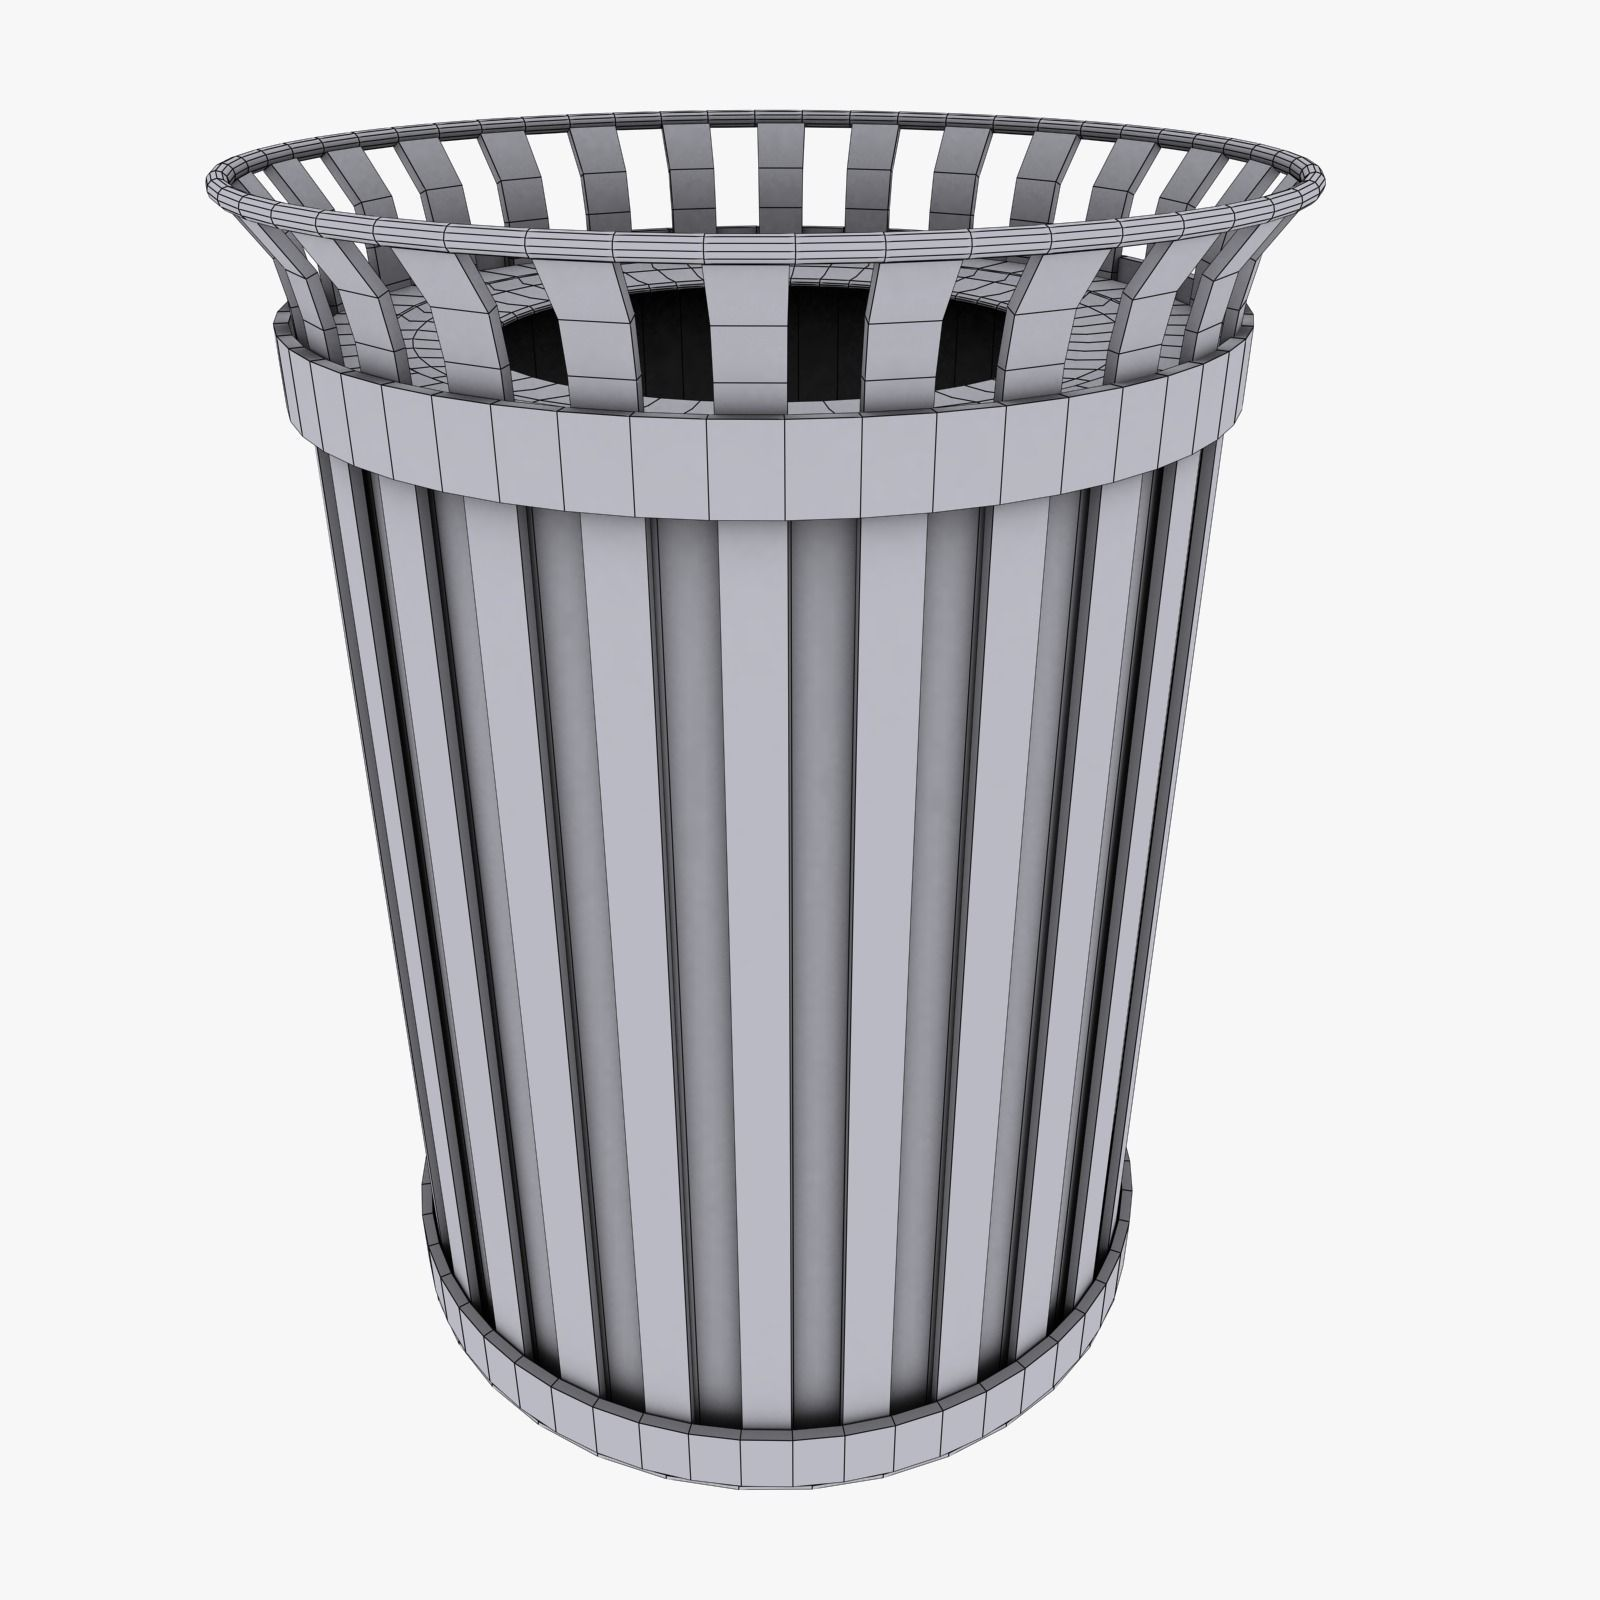 ... Outdoor Trash Can 3d Model Low Poly Max Obj 3ds Fbx Dxf Mtl 4